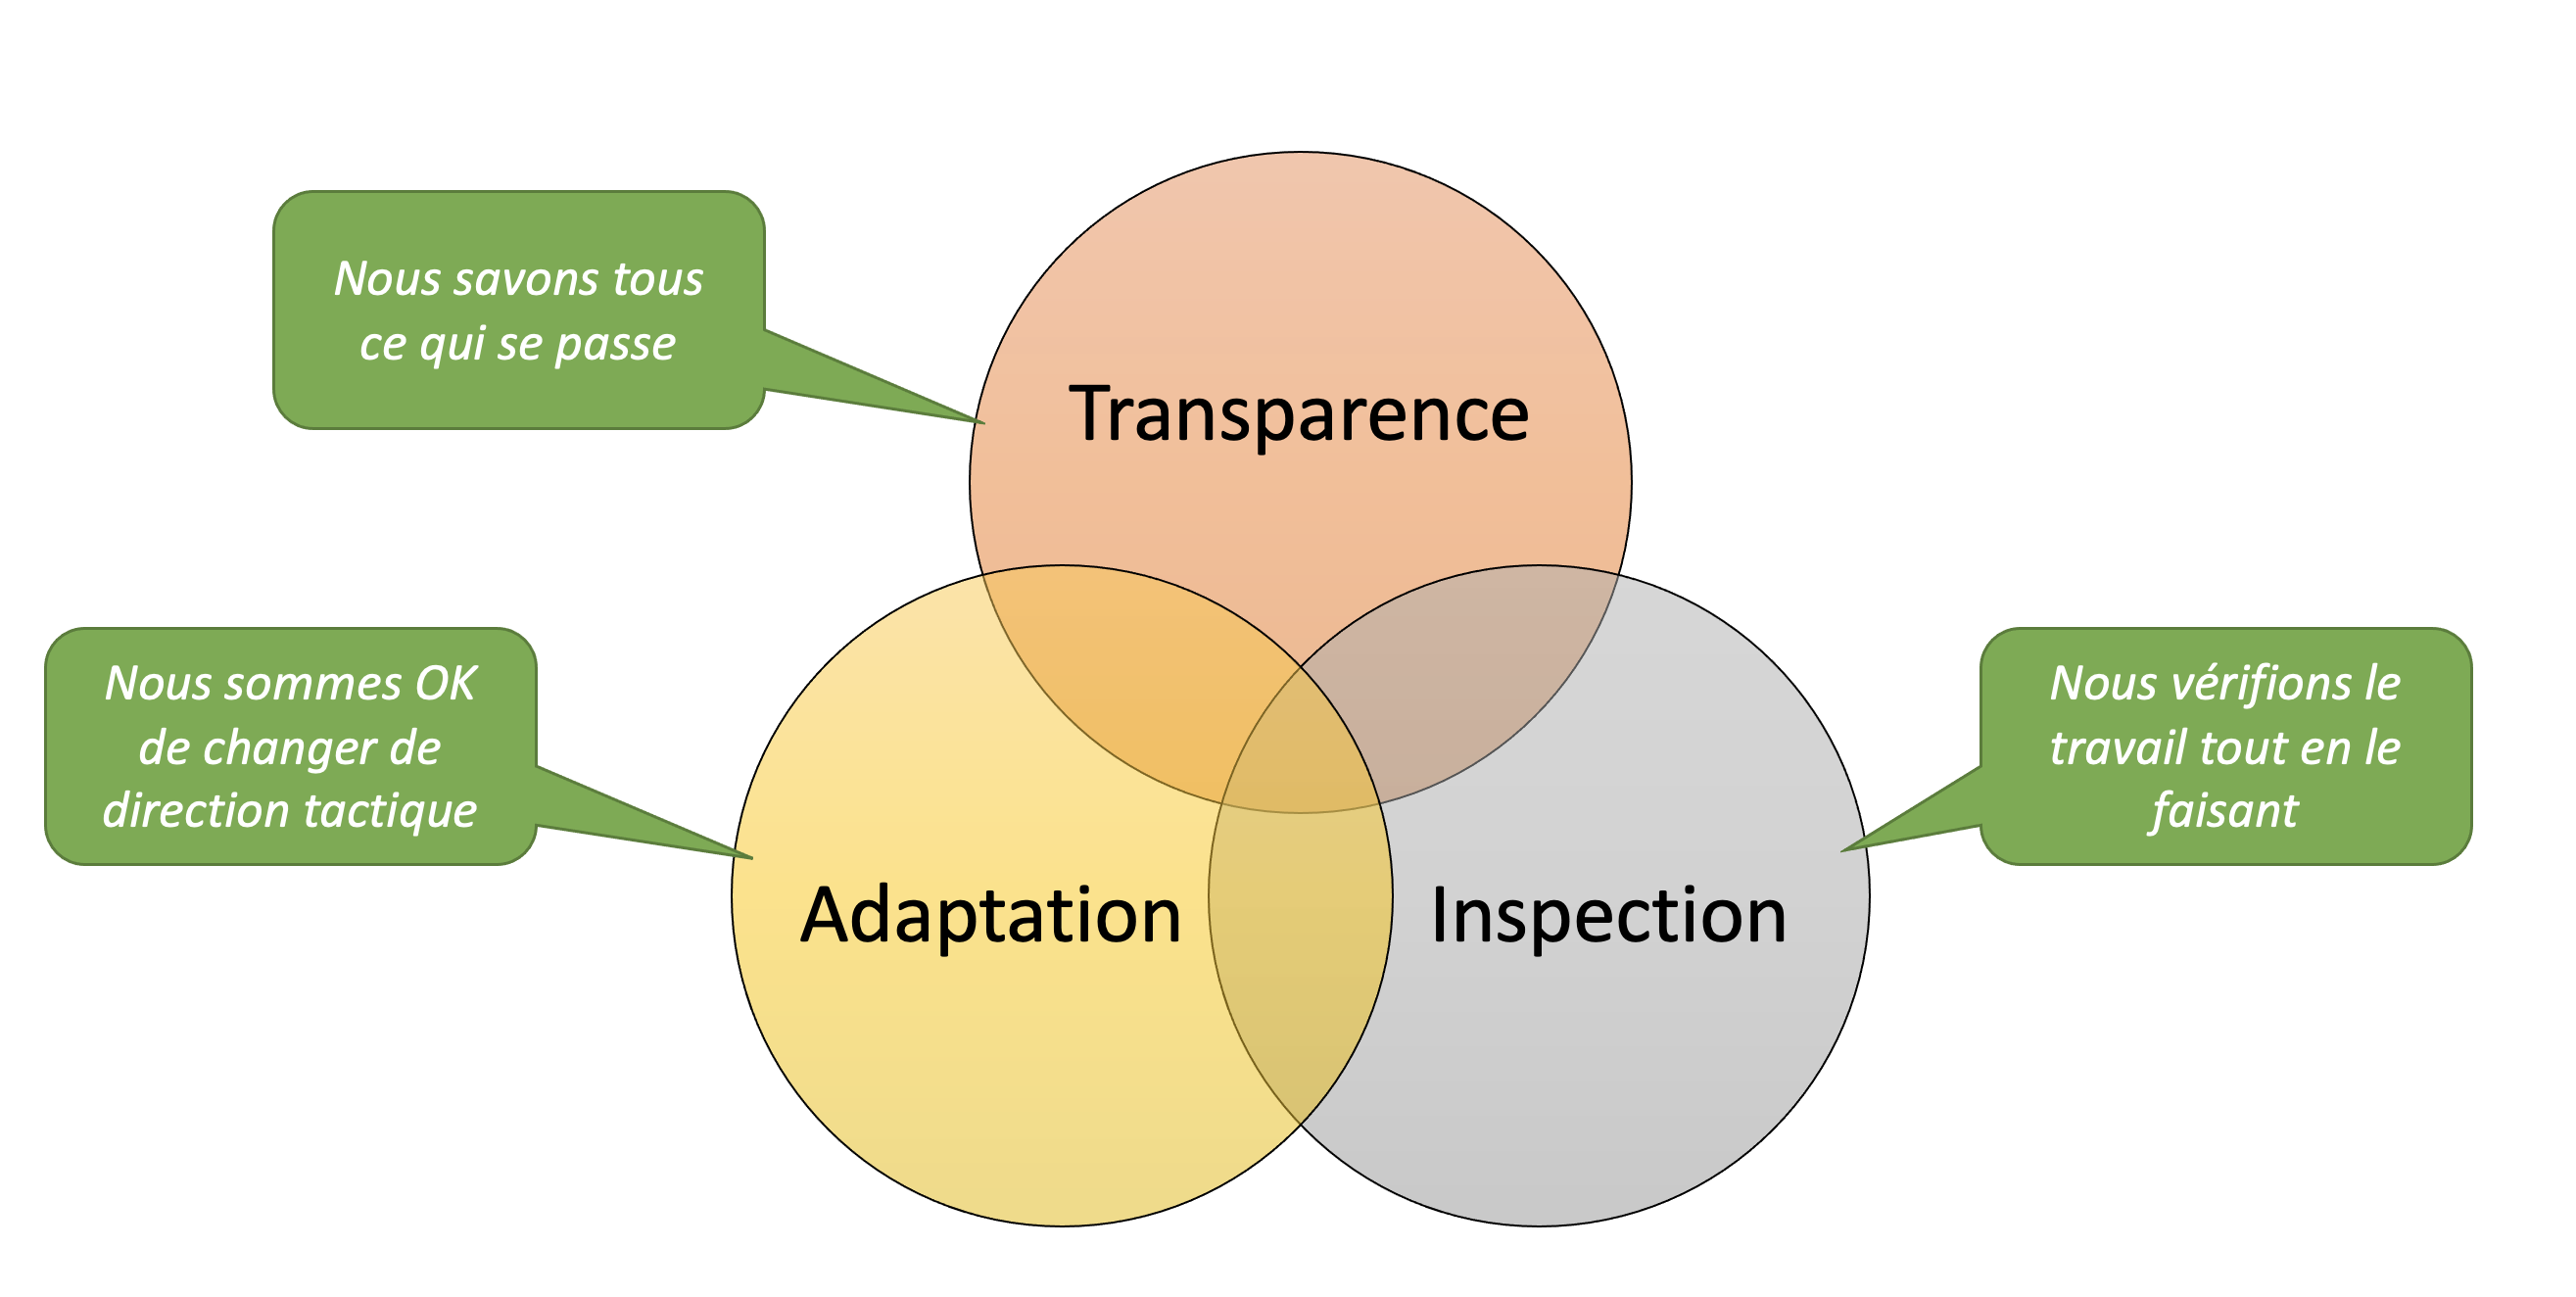 Transparence, inspection et adaptation